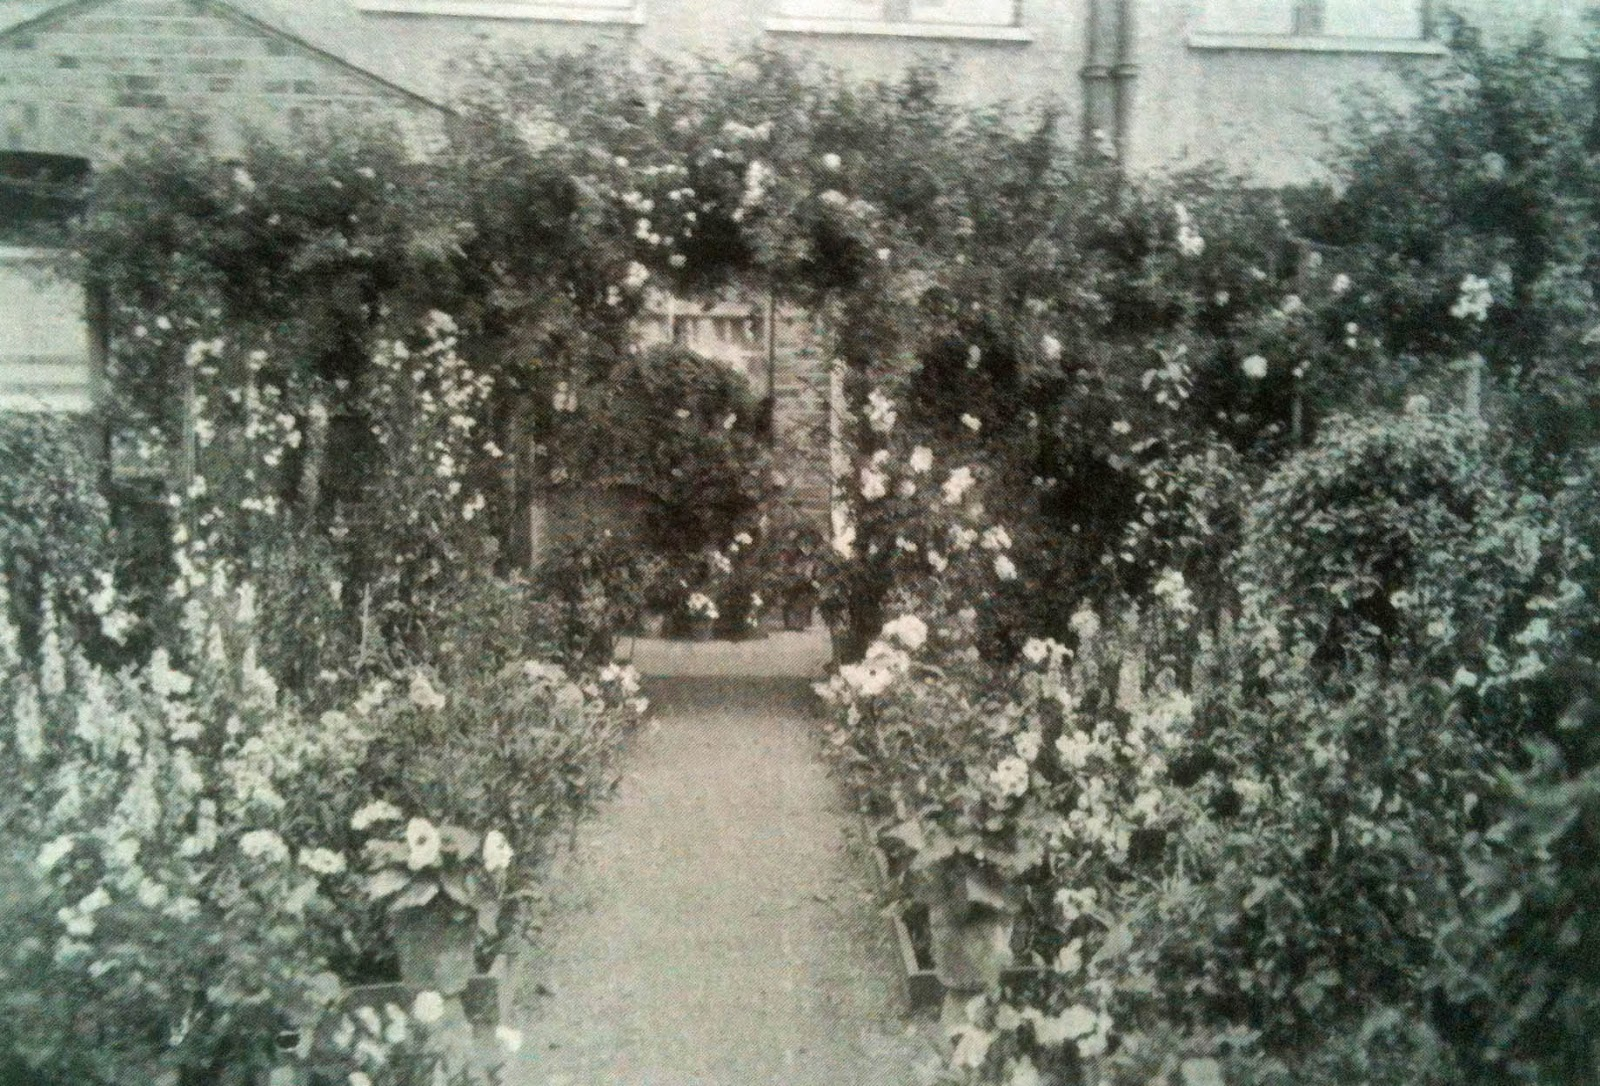 A suburban front garden from before TV.